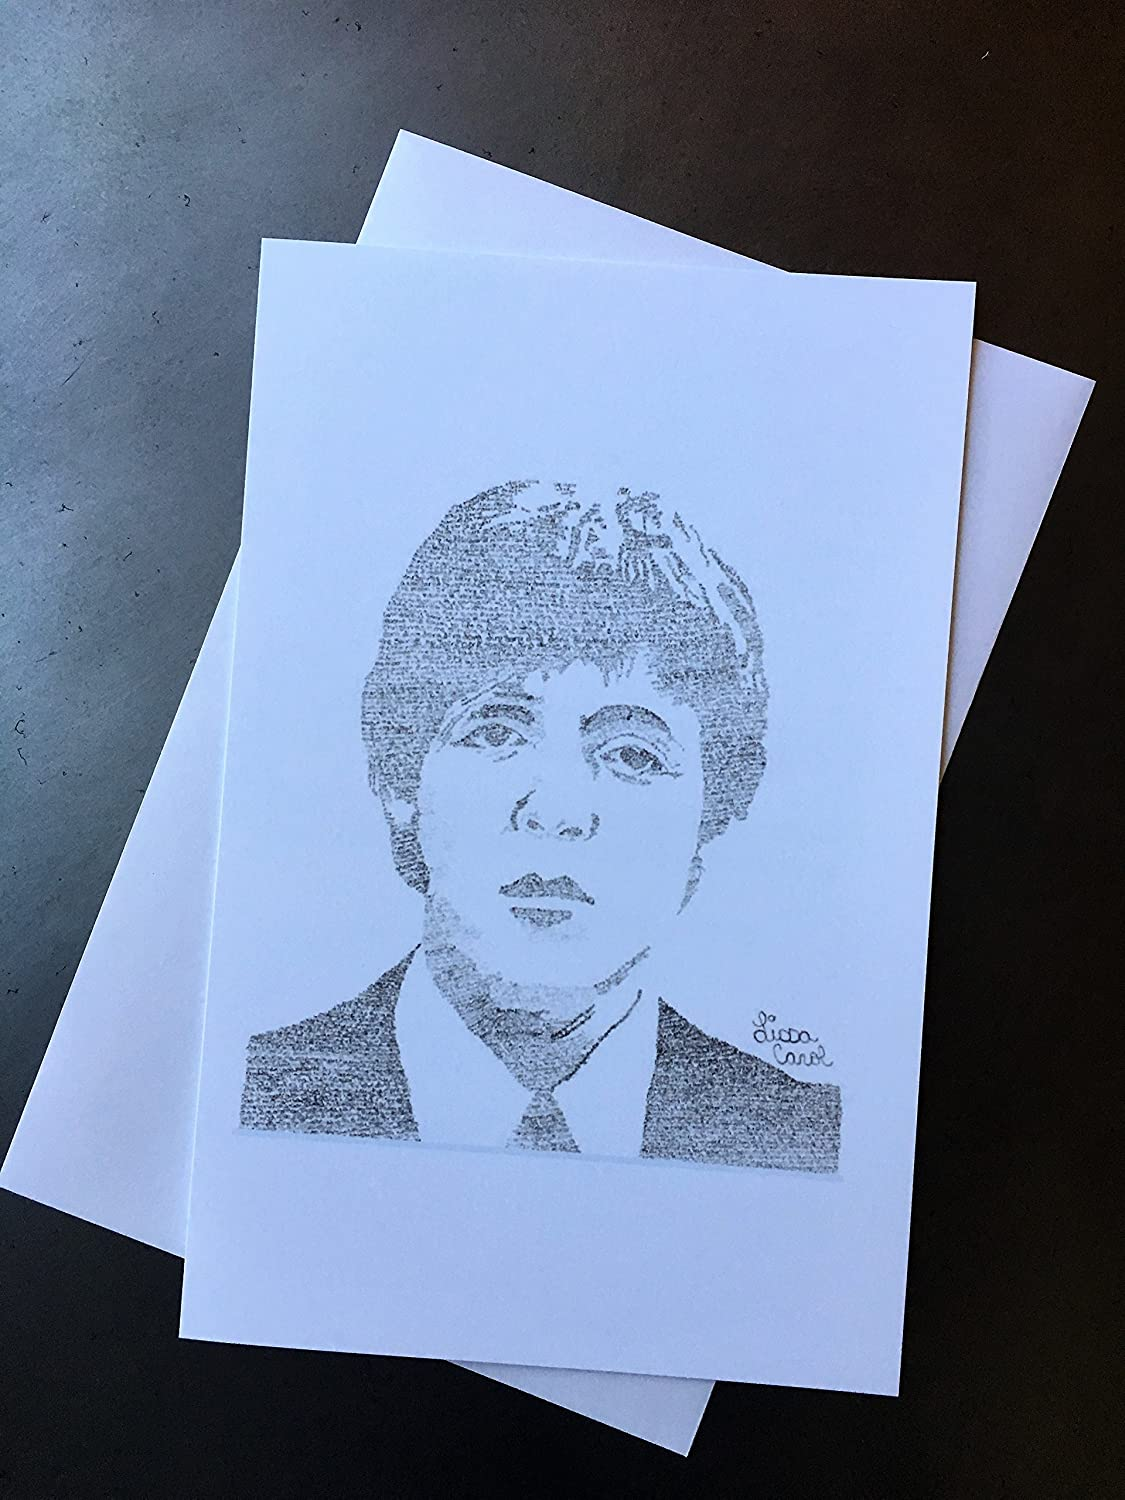 Christmas Card Artist.The Beatles Paul Mccartney Christmas Card Drawn From His Wonderful Christmastime Lyrics Xmas Contemporary Music Greeting Card With Envelope